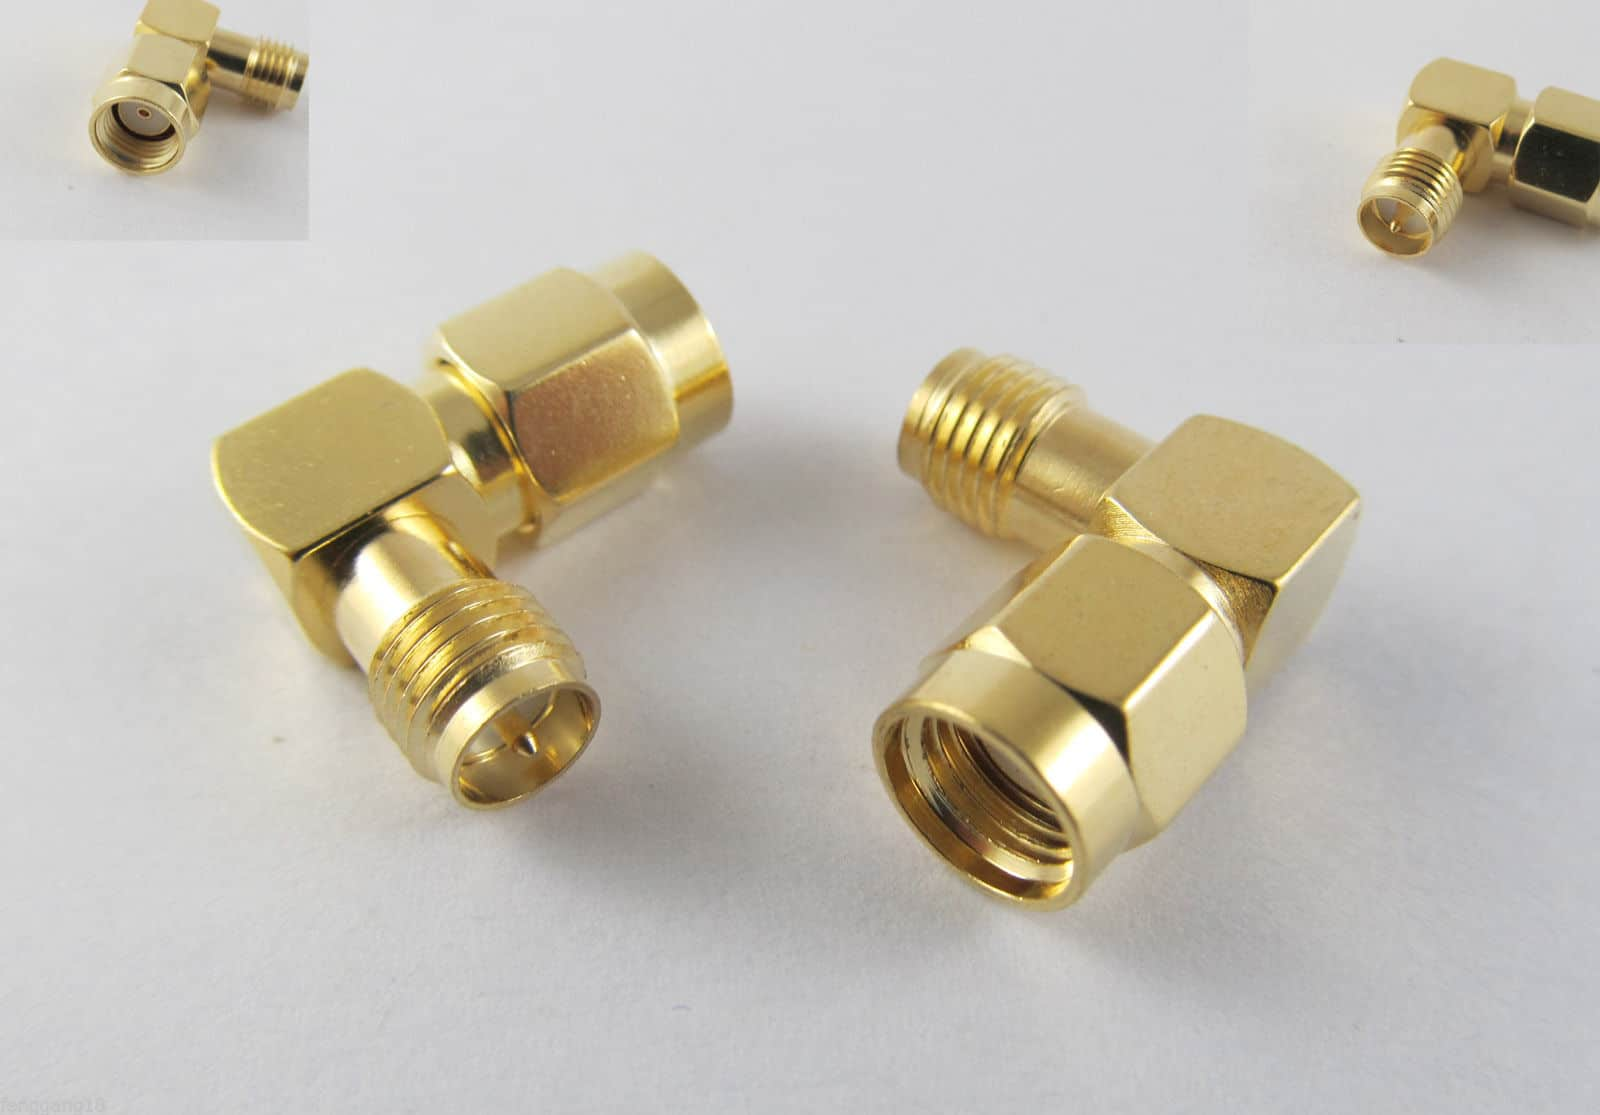 RP-SMA Male To RP-SMA Female Male Pin Right Angle 90 Degree RF